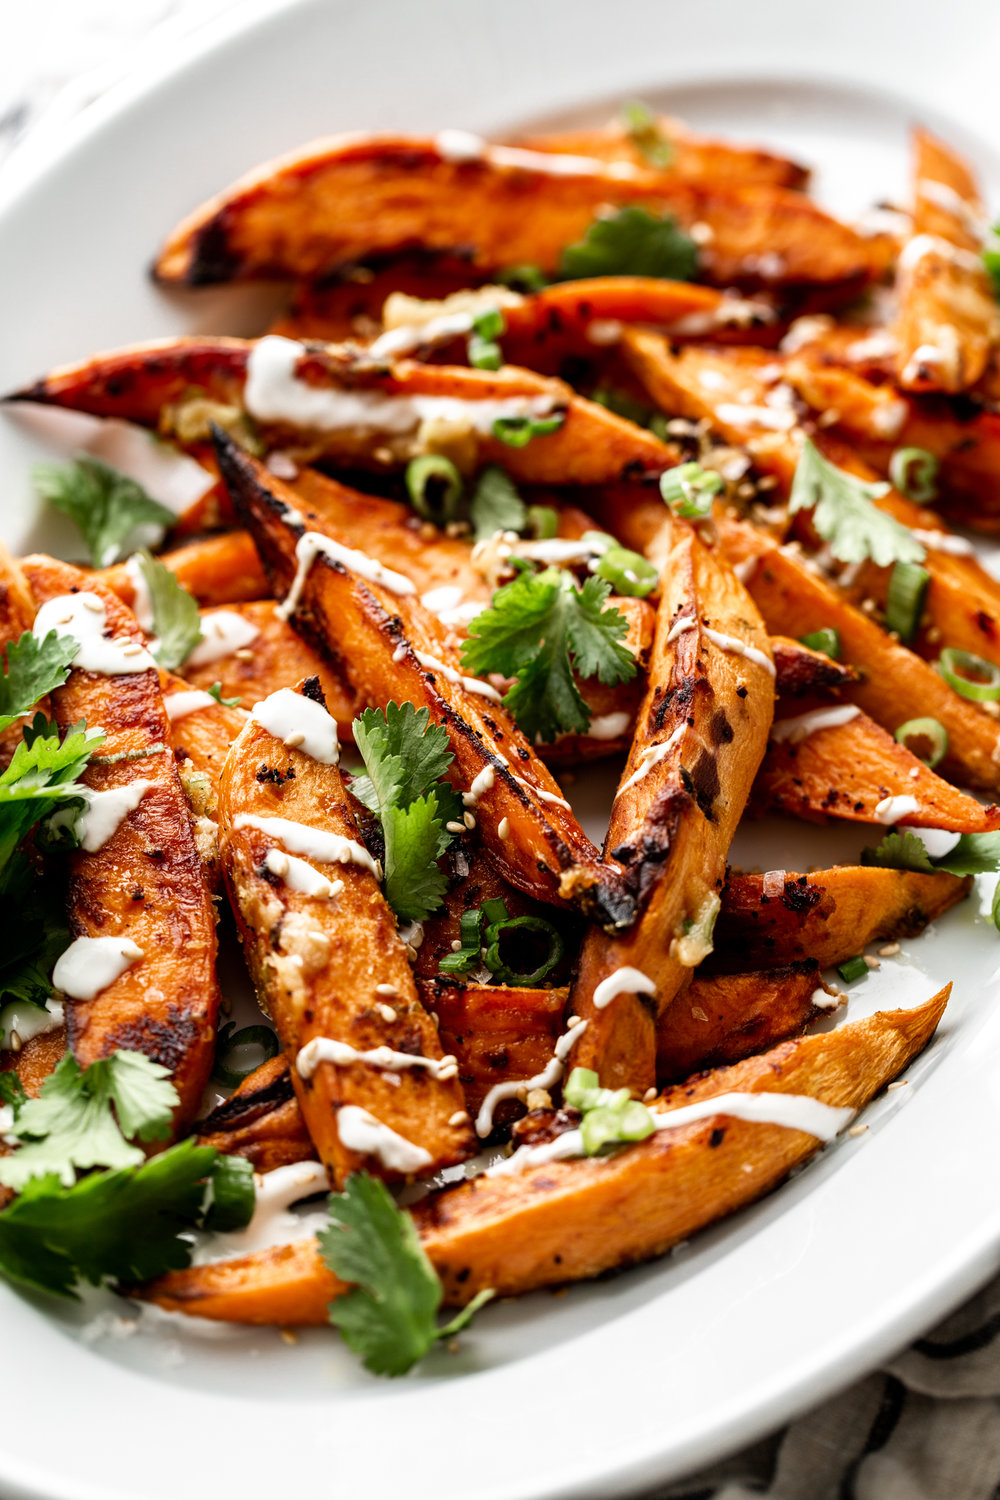 This oven roasted sweet potato recipe is tossed in miso butter for a unique and delicious versatile root vegetable side.